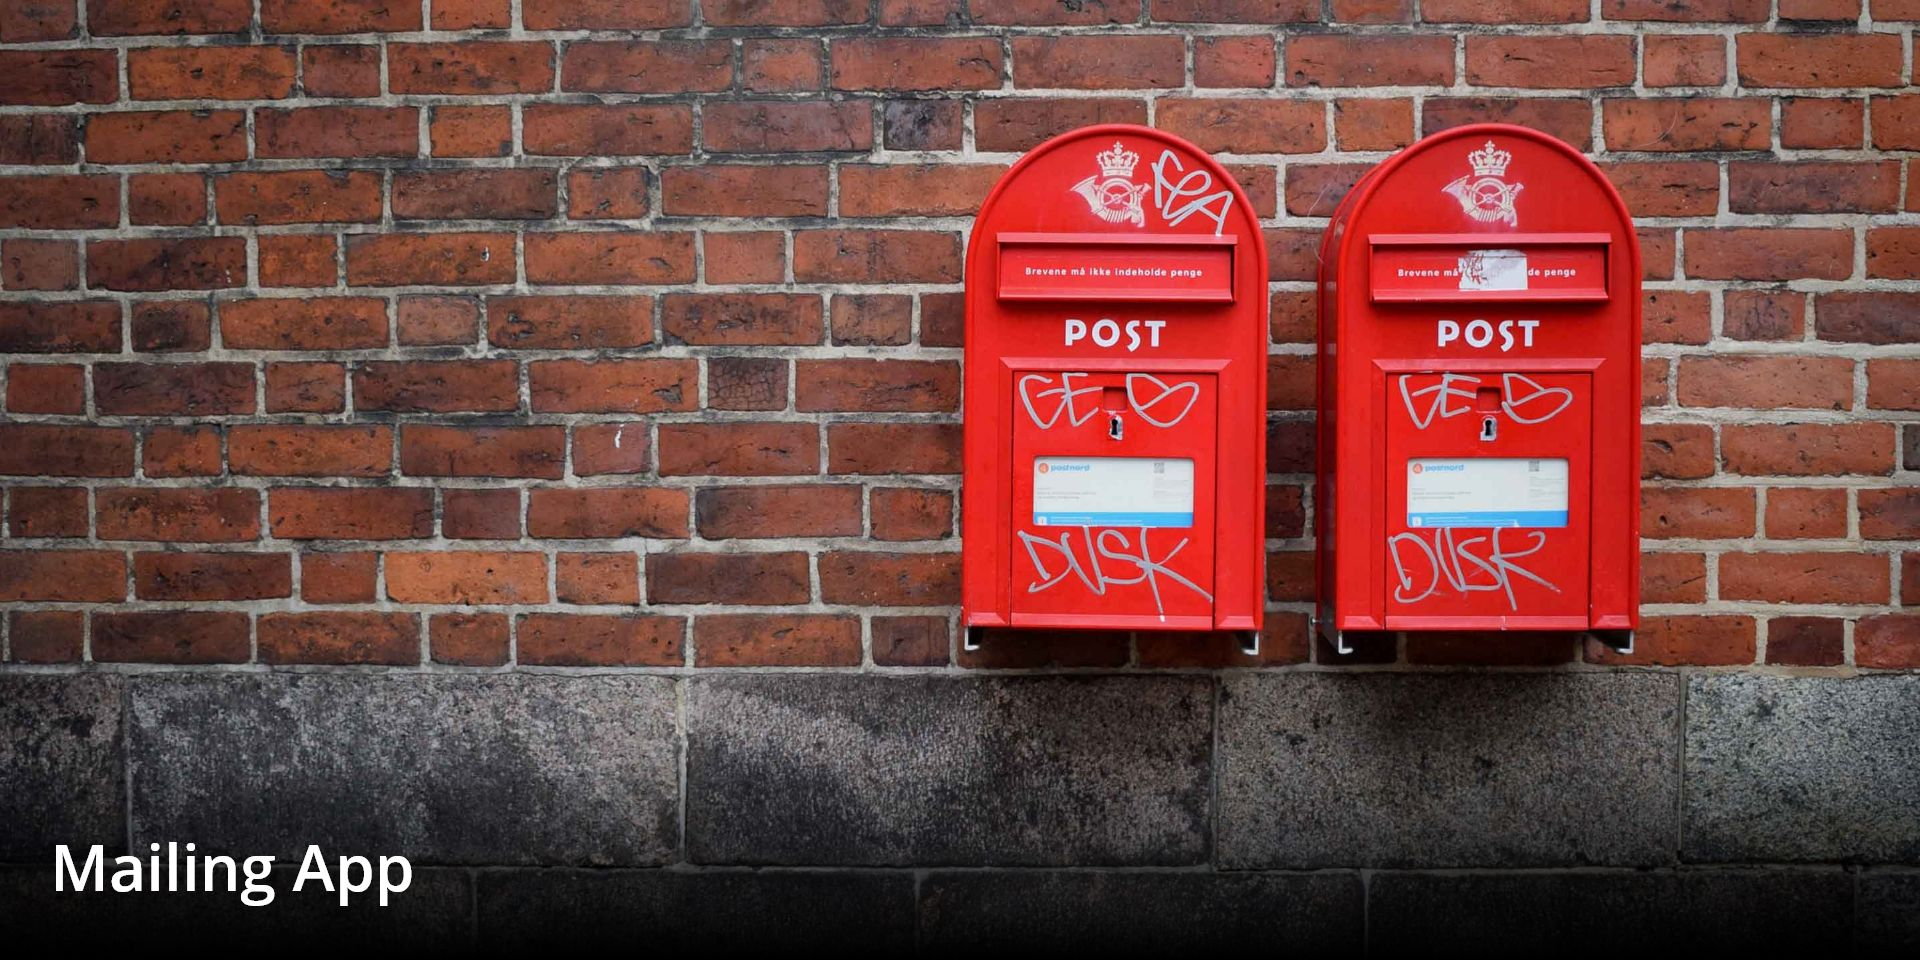 two post boxes on a brick wall